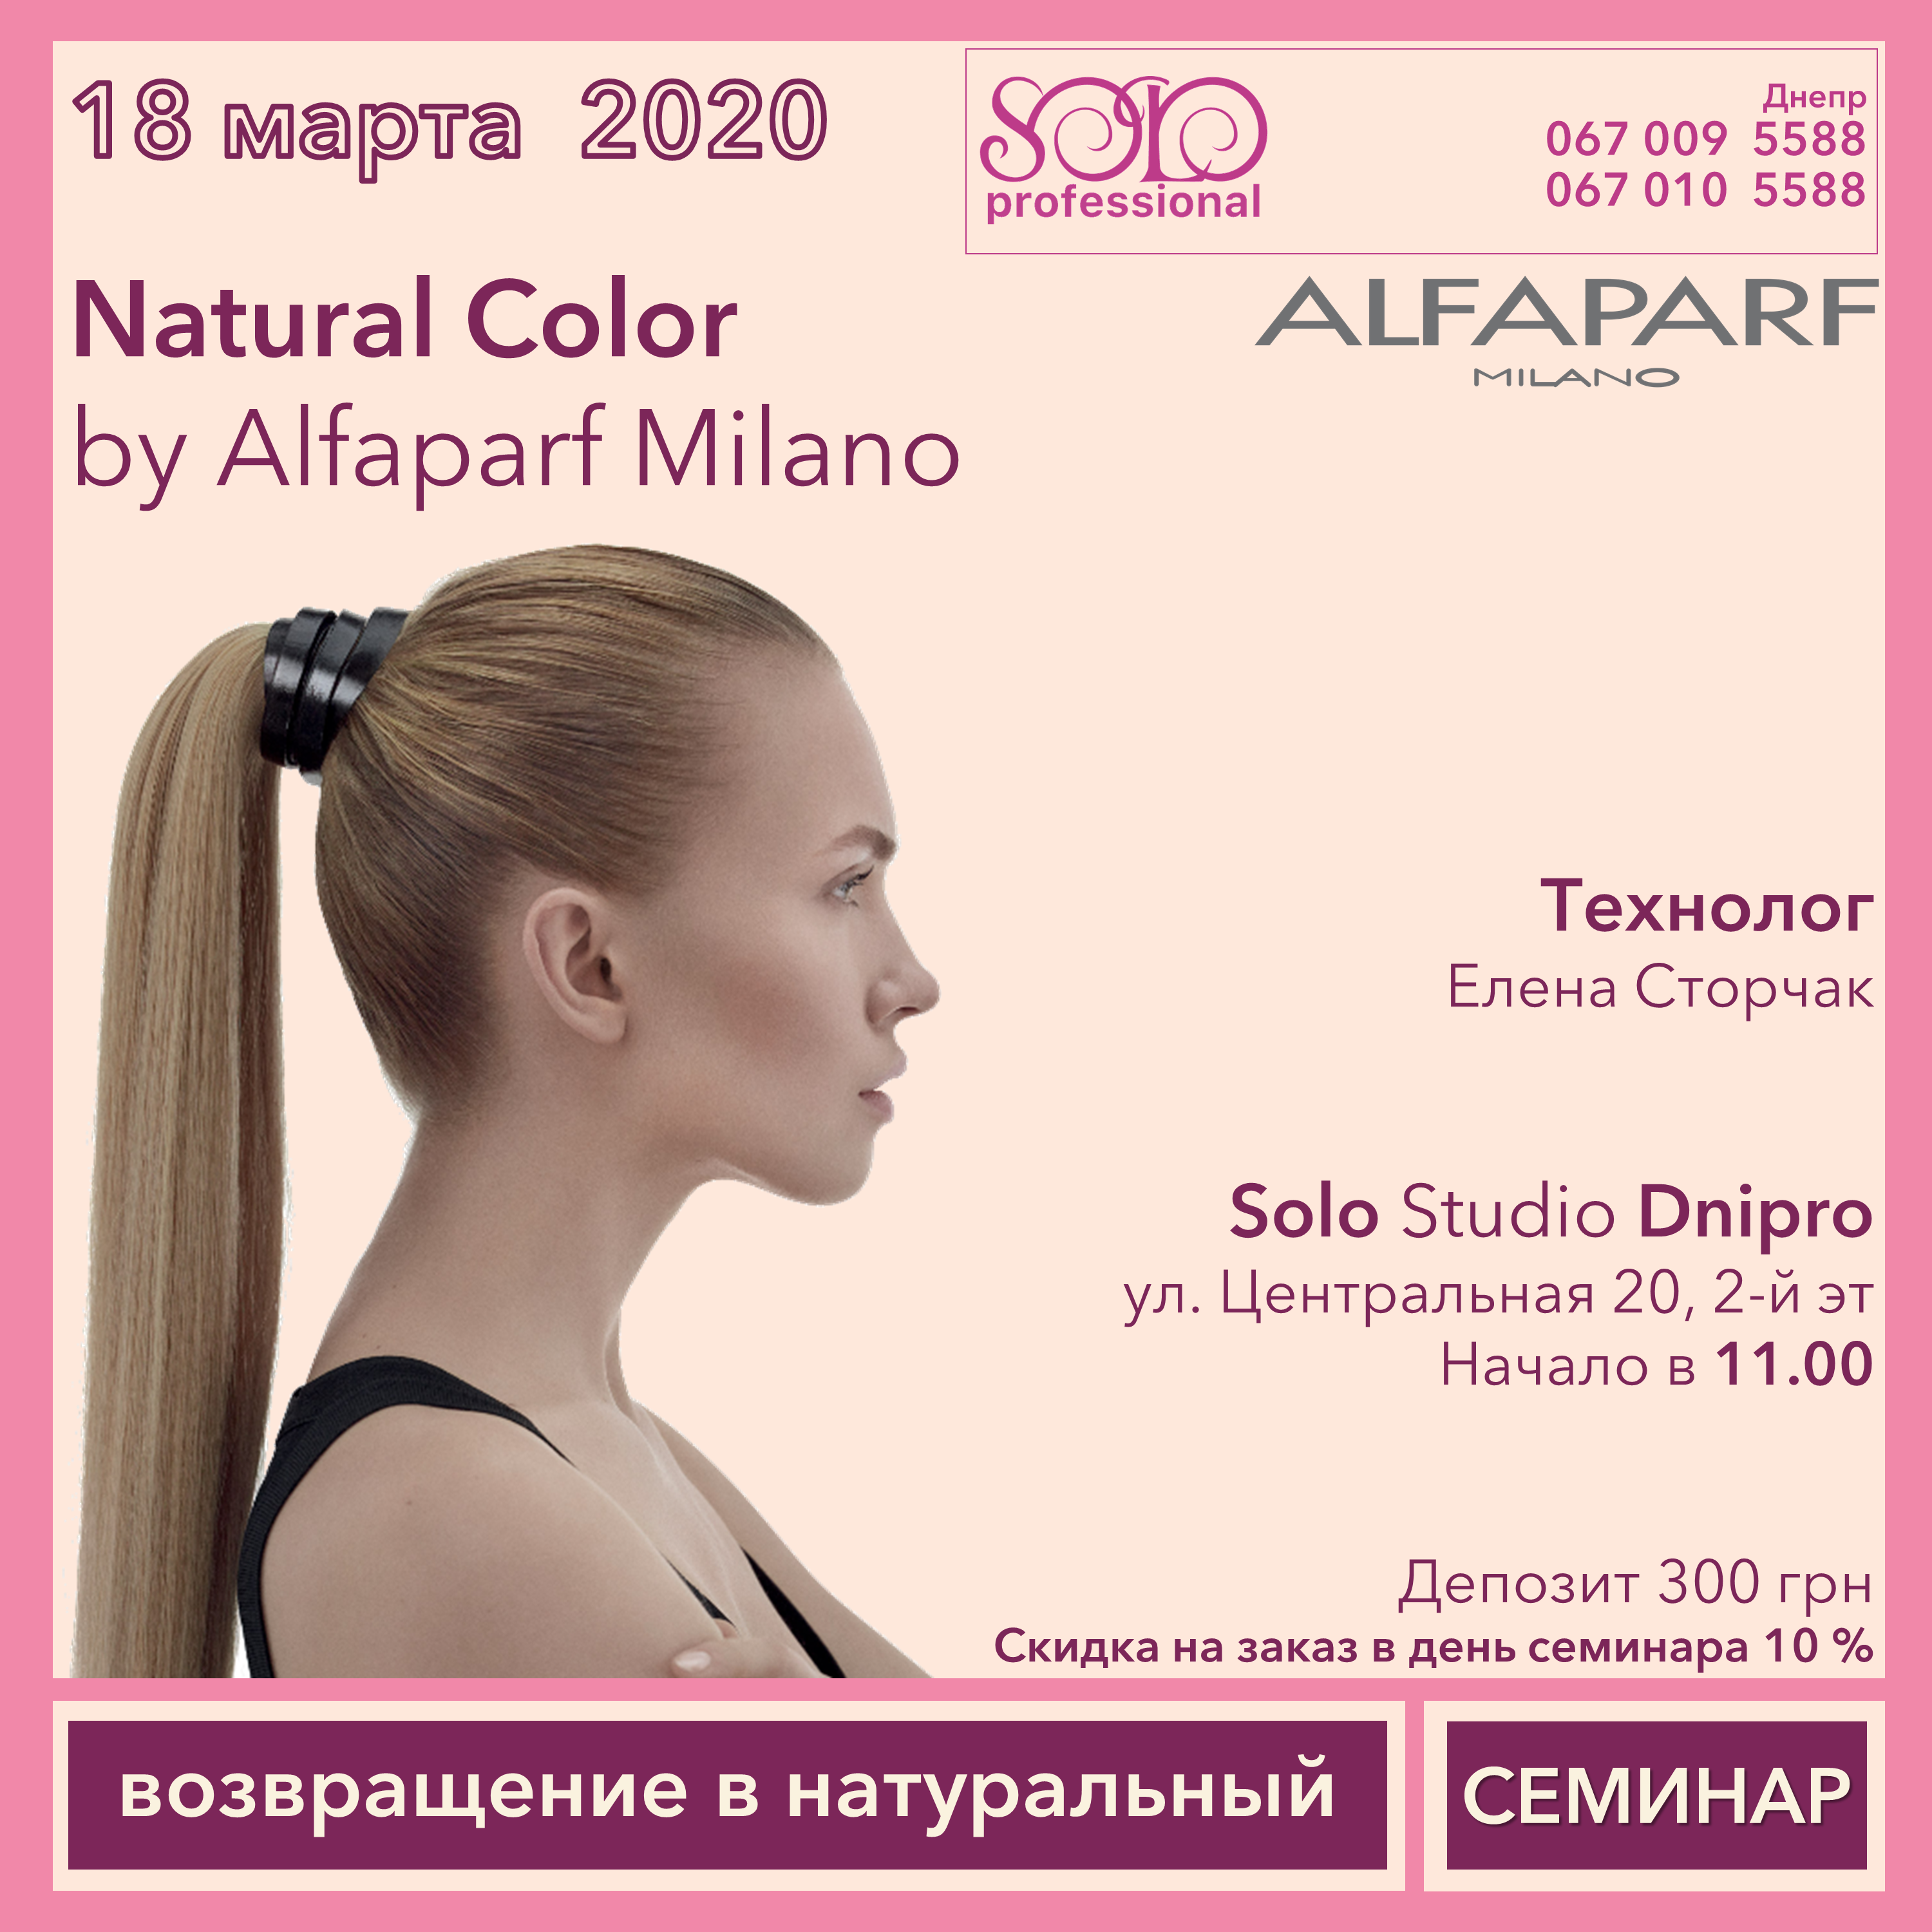 Natural Color by Alfaparf Milano